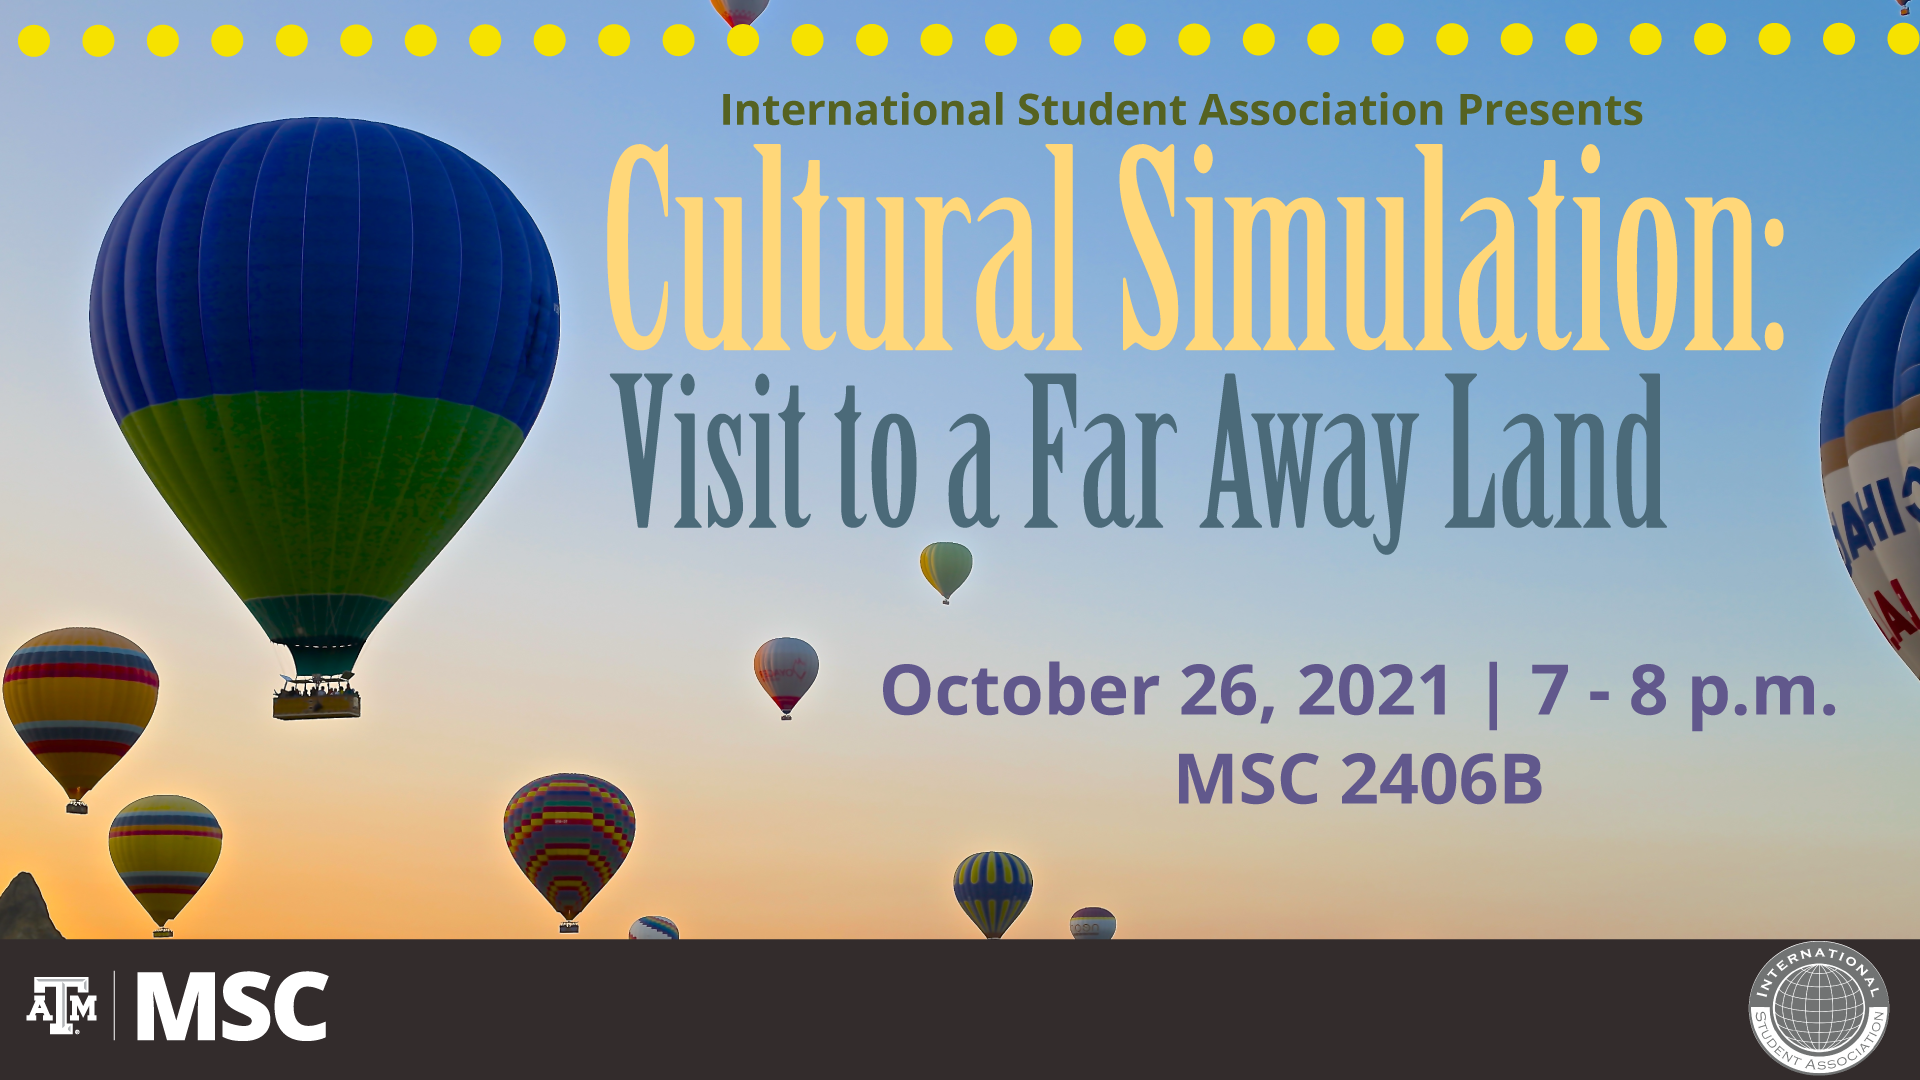 International Student Association Presents: Cultural Simulation. Visit to a Far Away Land. October 26, 2021 from 7 to 8 p.m. at the MSC 2406B